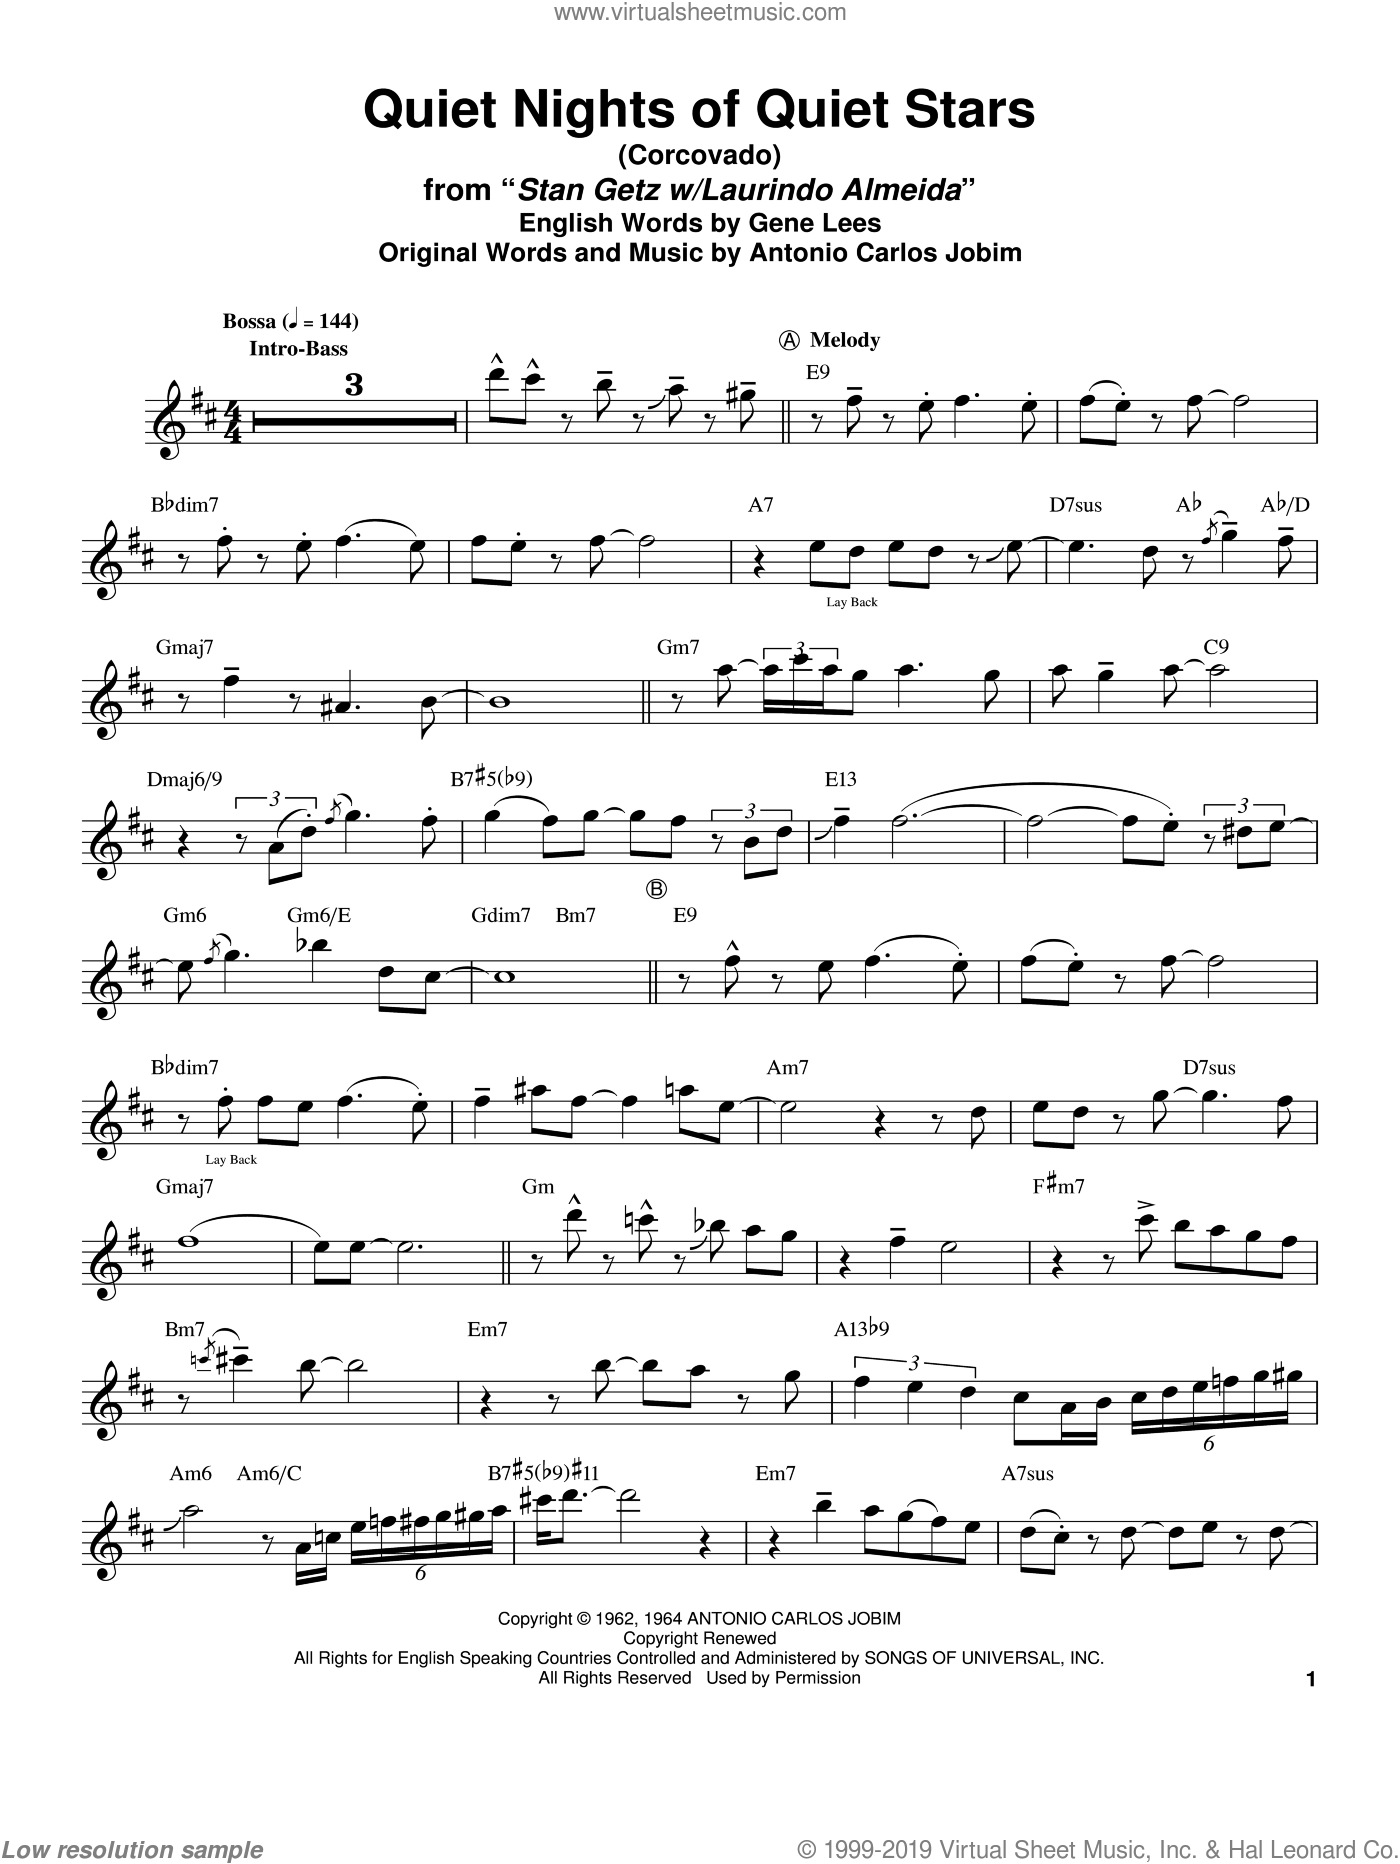 Quiet Nights Of Quiet Stars (Corcovado) sheet music for tenor saxophone solo (transcription) by Stan Getz, Andy Williams, Antonio Carlos Jobim and Eugene John Lees, intermediate tenor saxophone (transcription)